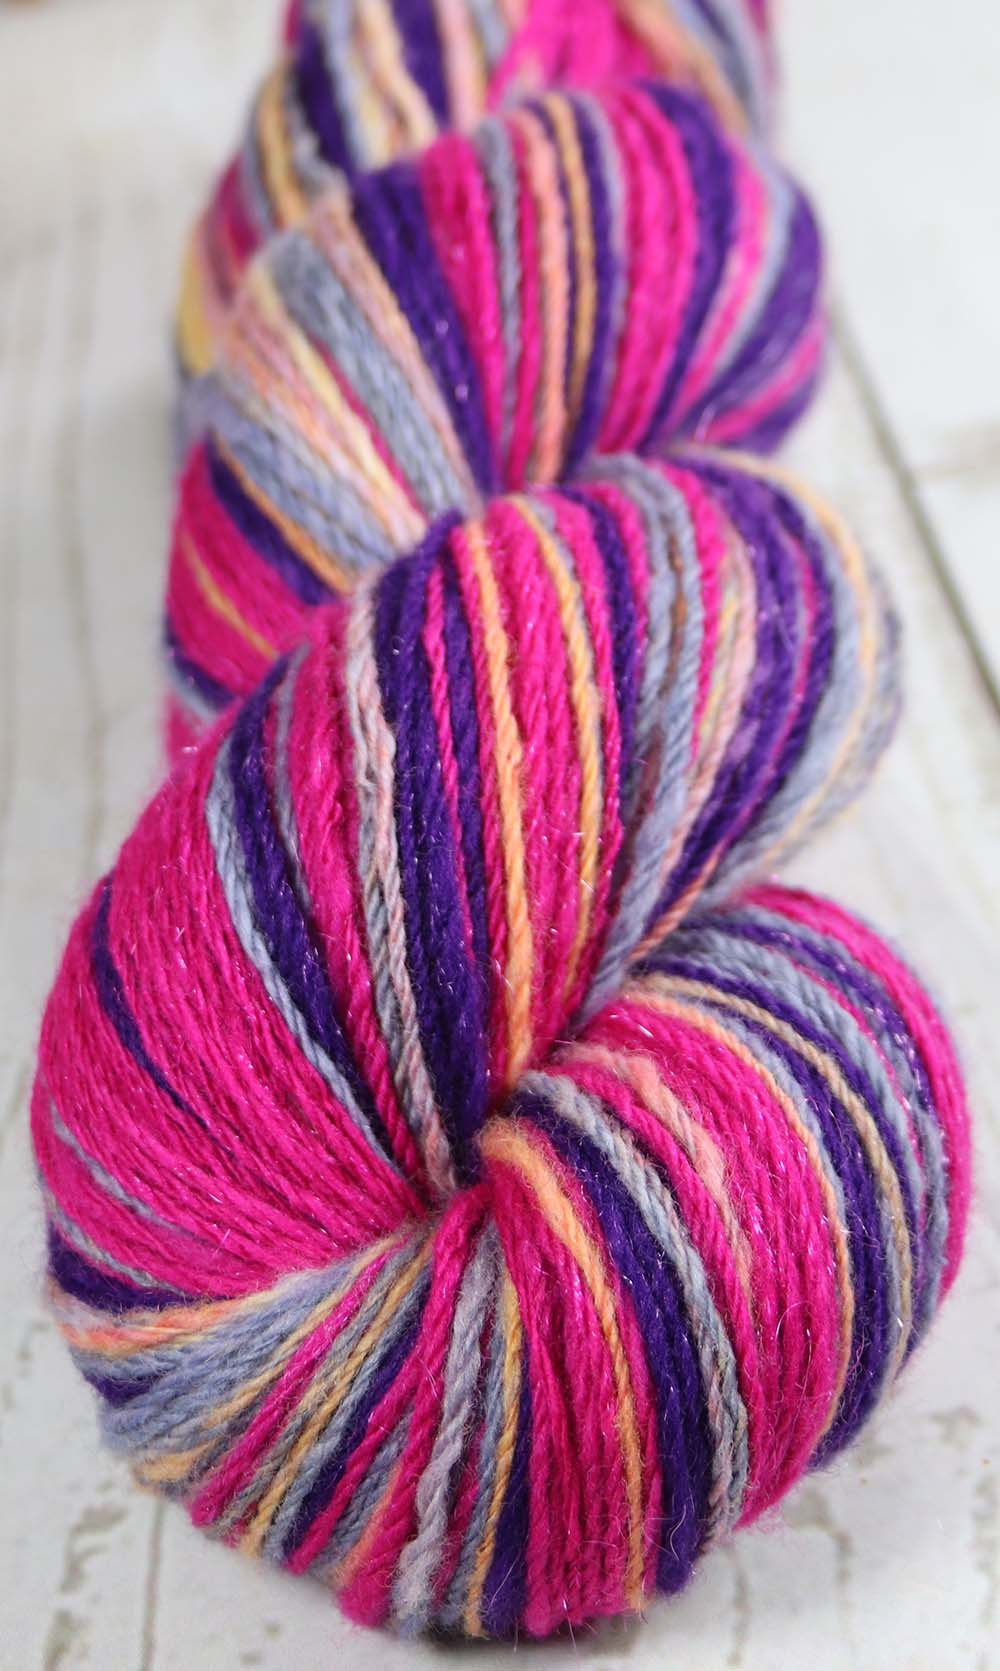 RASPBERRY BERET loves PURPLE RAIN - Hand dyed, hand spun DK yarn